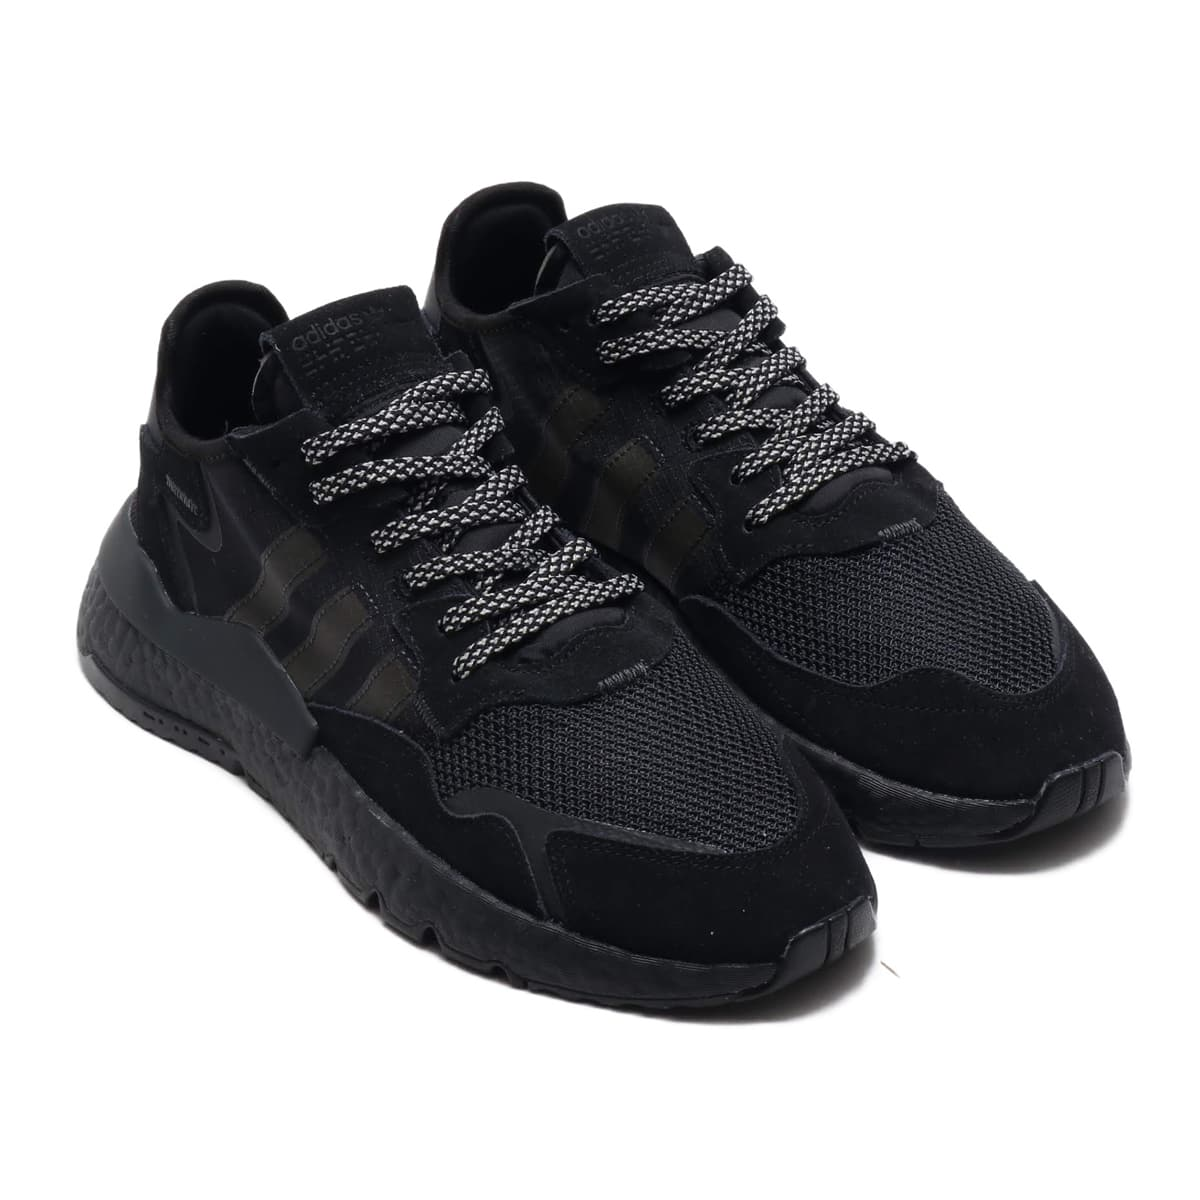 adidas Originals NITE JOGGER CORE BLACK/CARBON/CARBON 19SS-I_photo_large